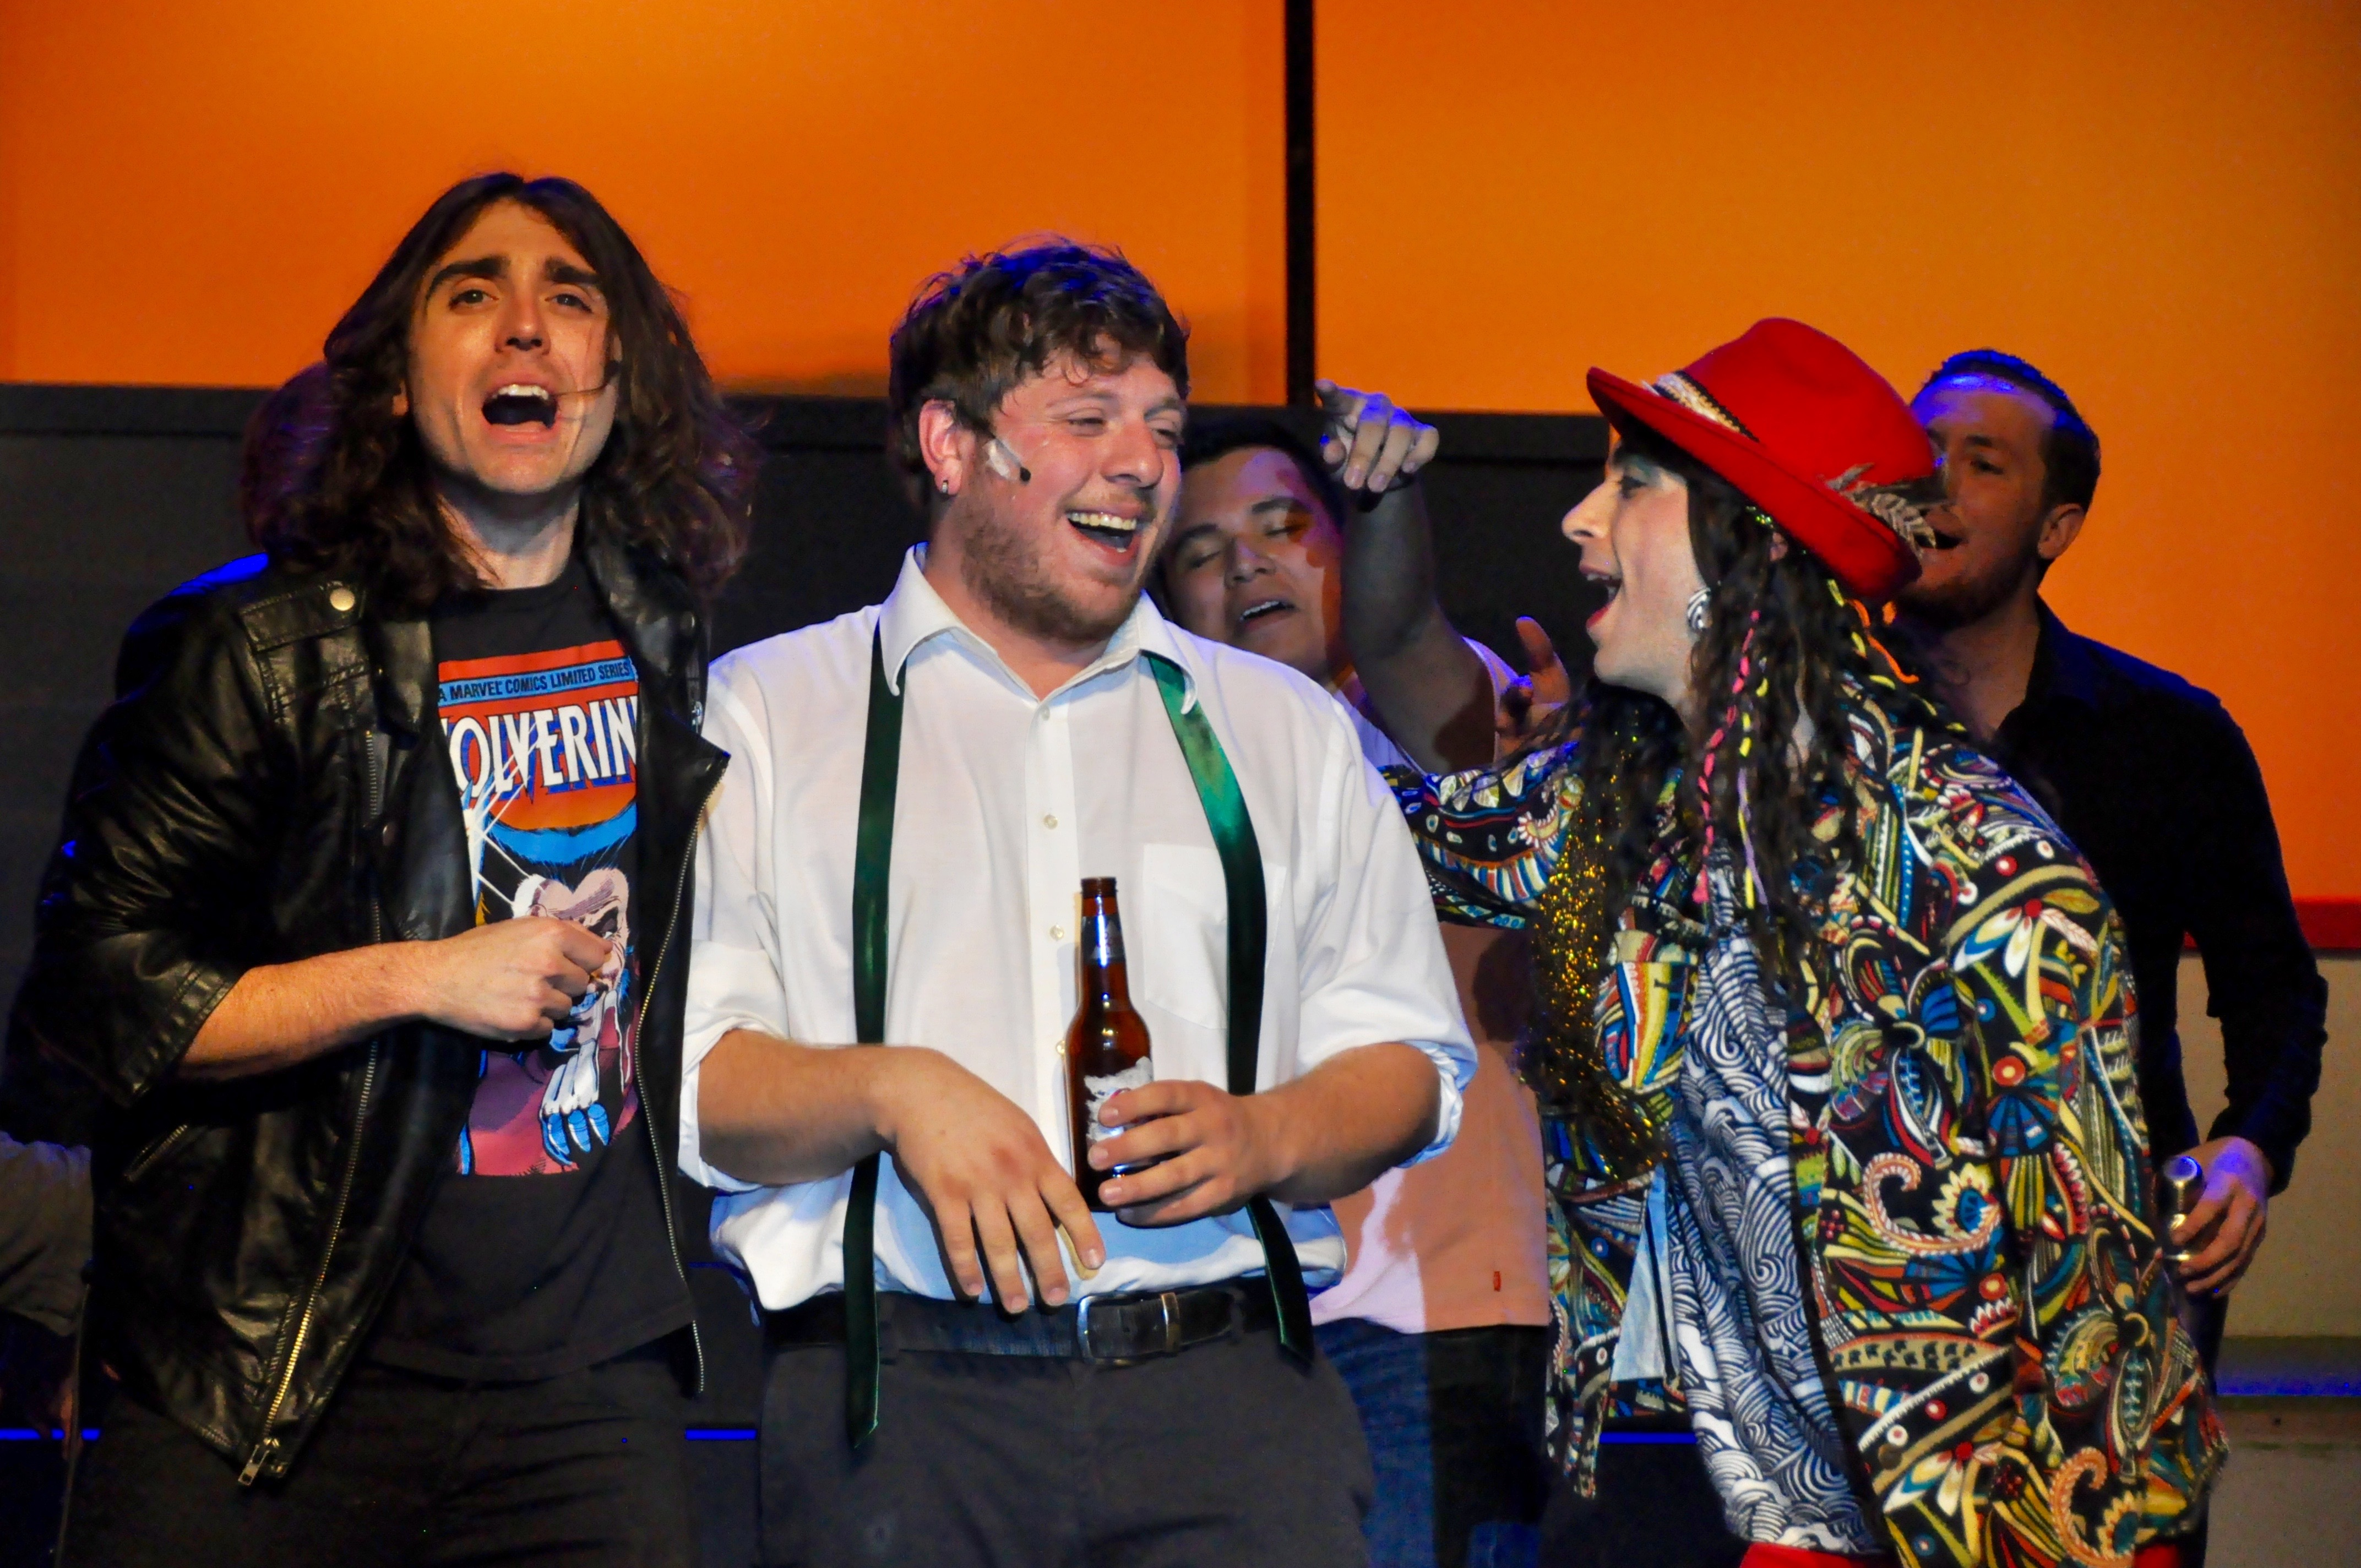 BWW Review: THE WEDDING SINGER at Cultural Arts Playhouse